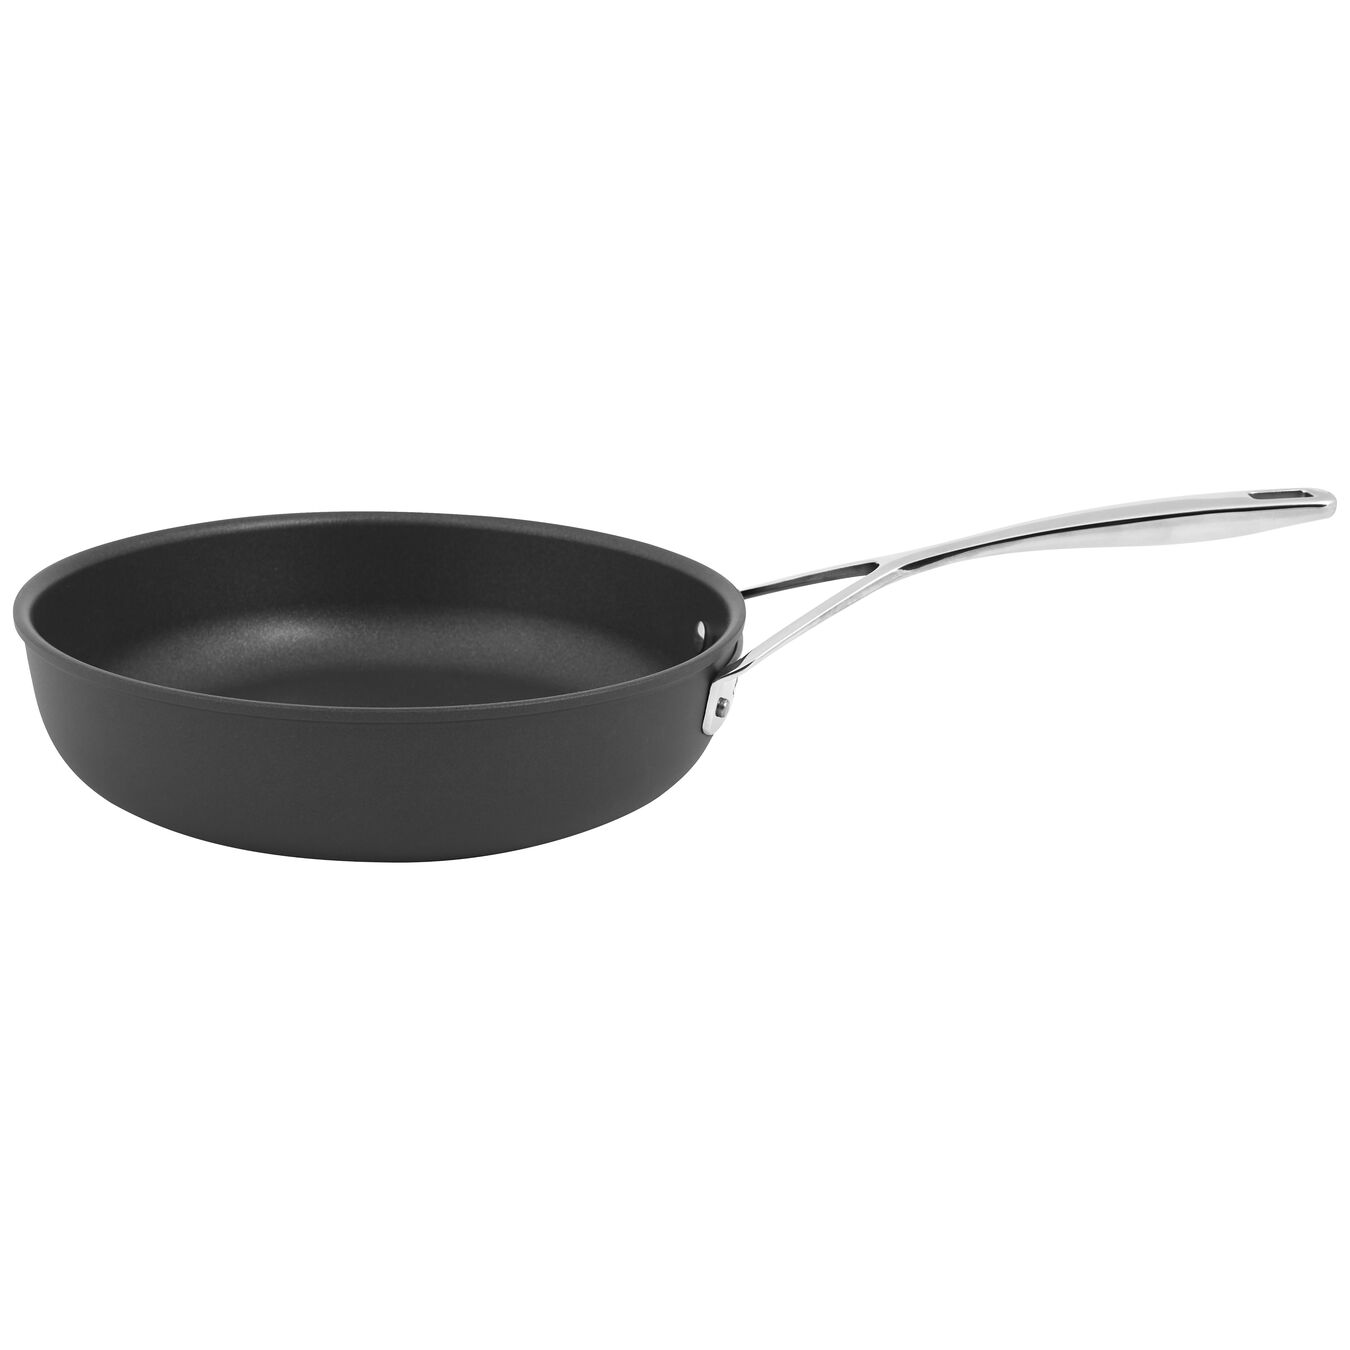 9.5-inch, Aluminum, Non-stick Frying pan high-sided,,large 1